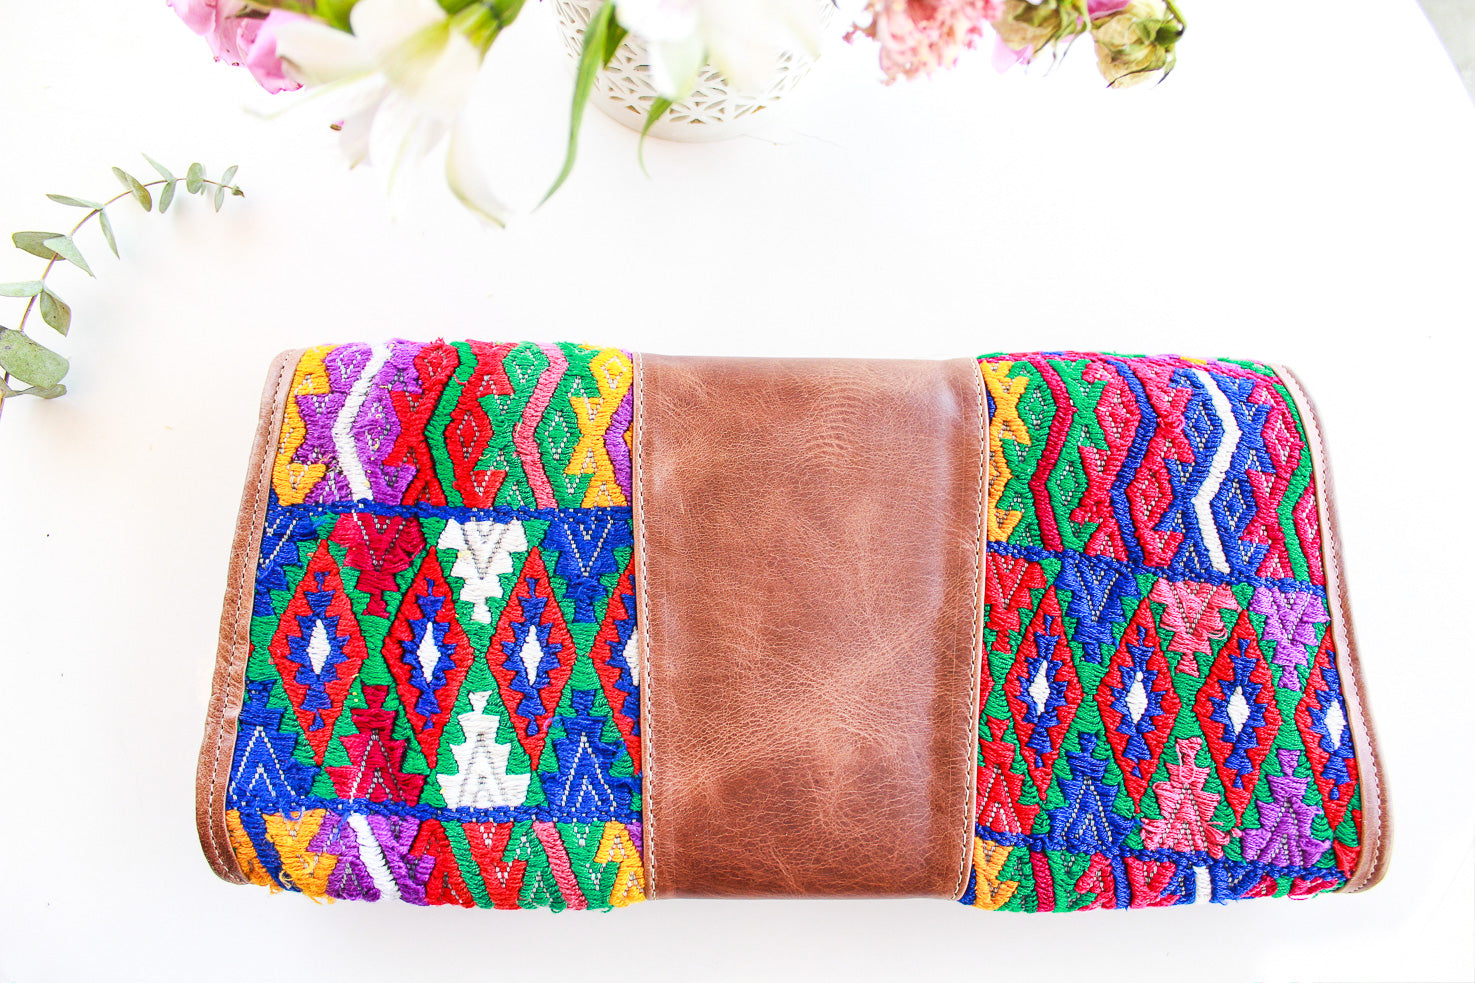 The Alaia Clutch - Wild Hearts & Halos